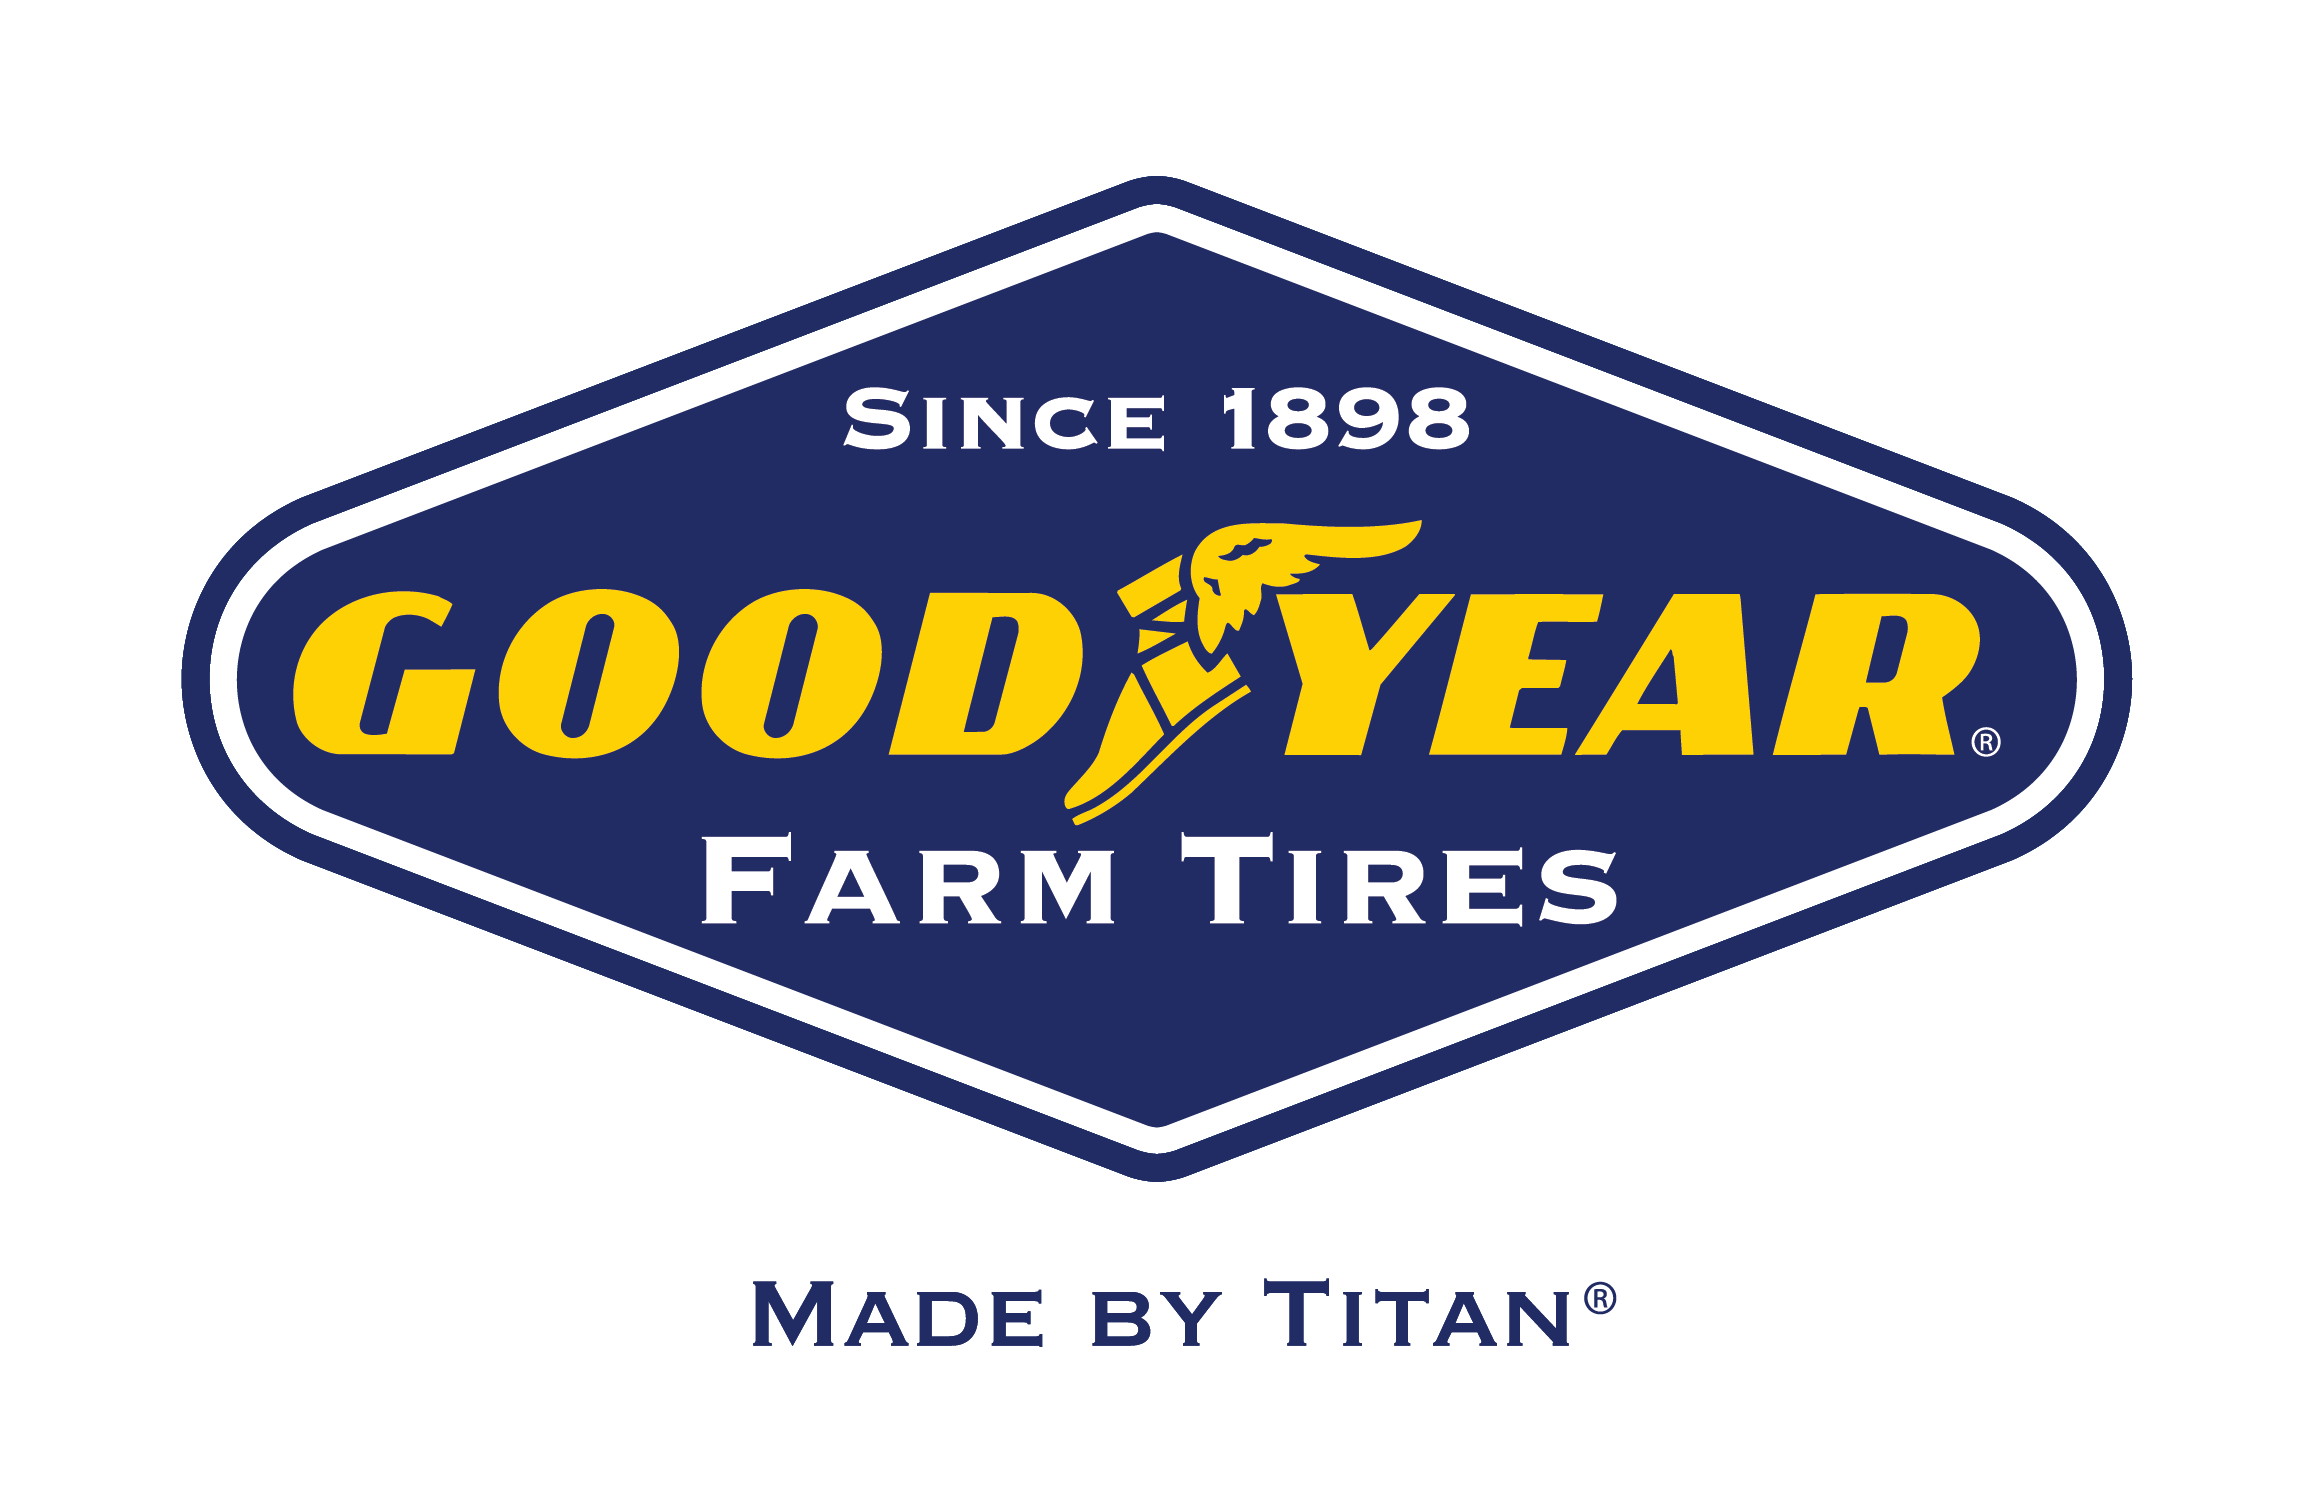 Titan and Goodyear Farm Tyres